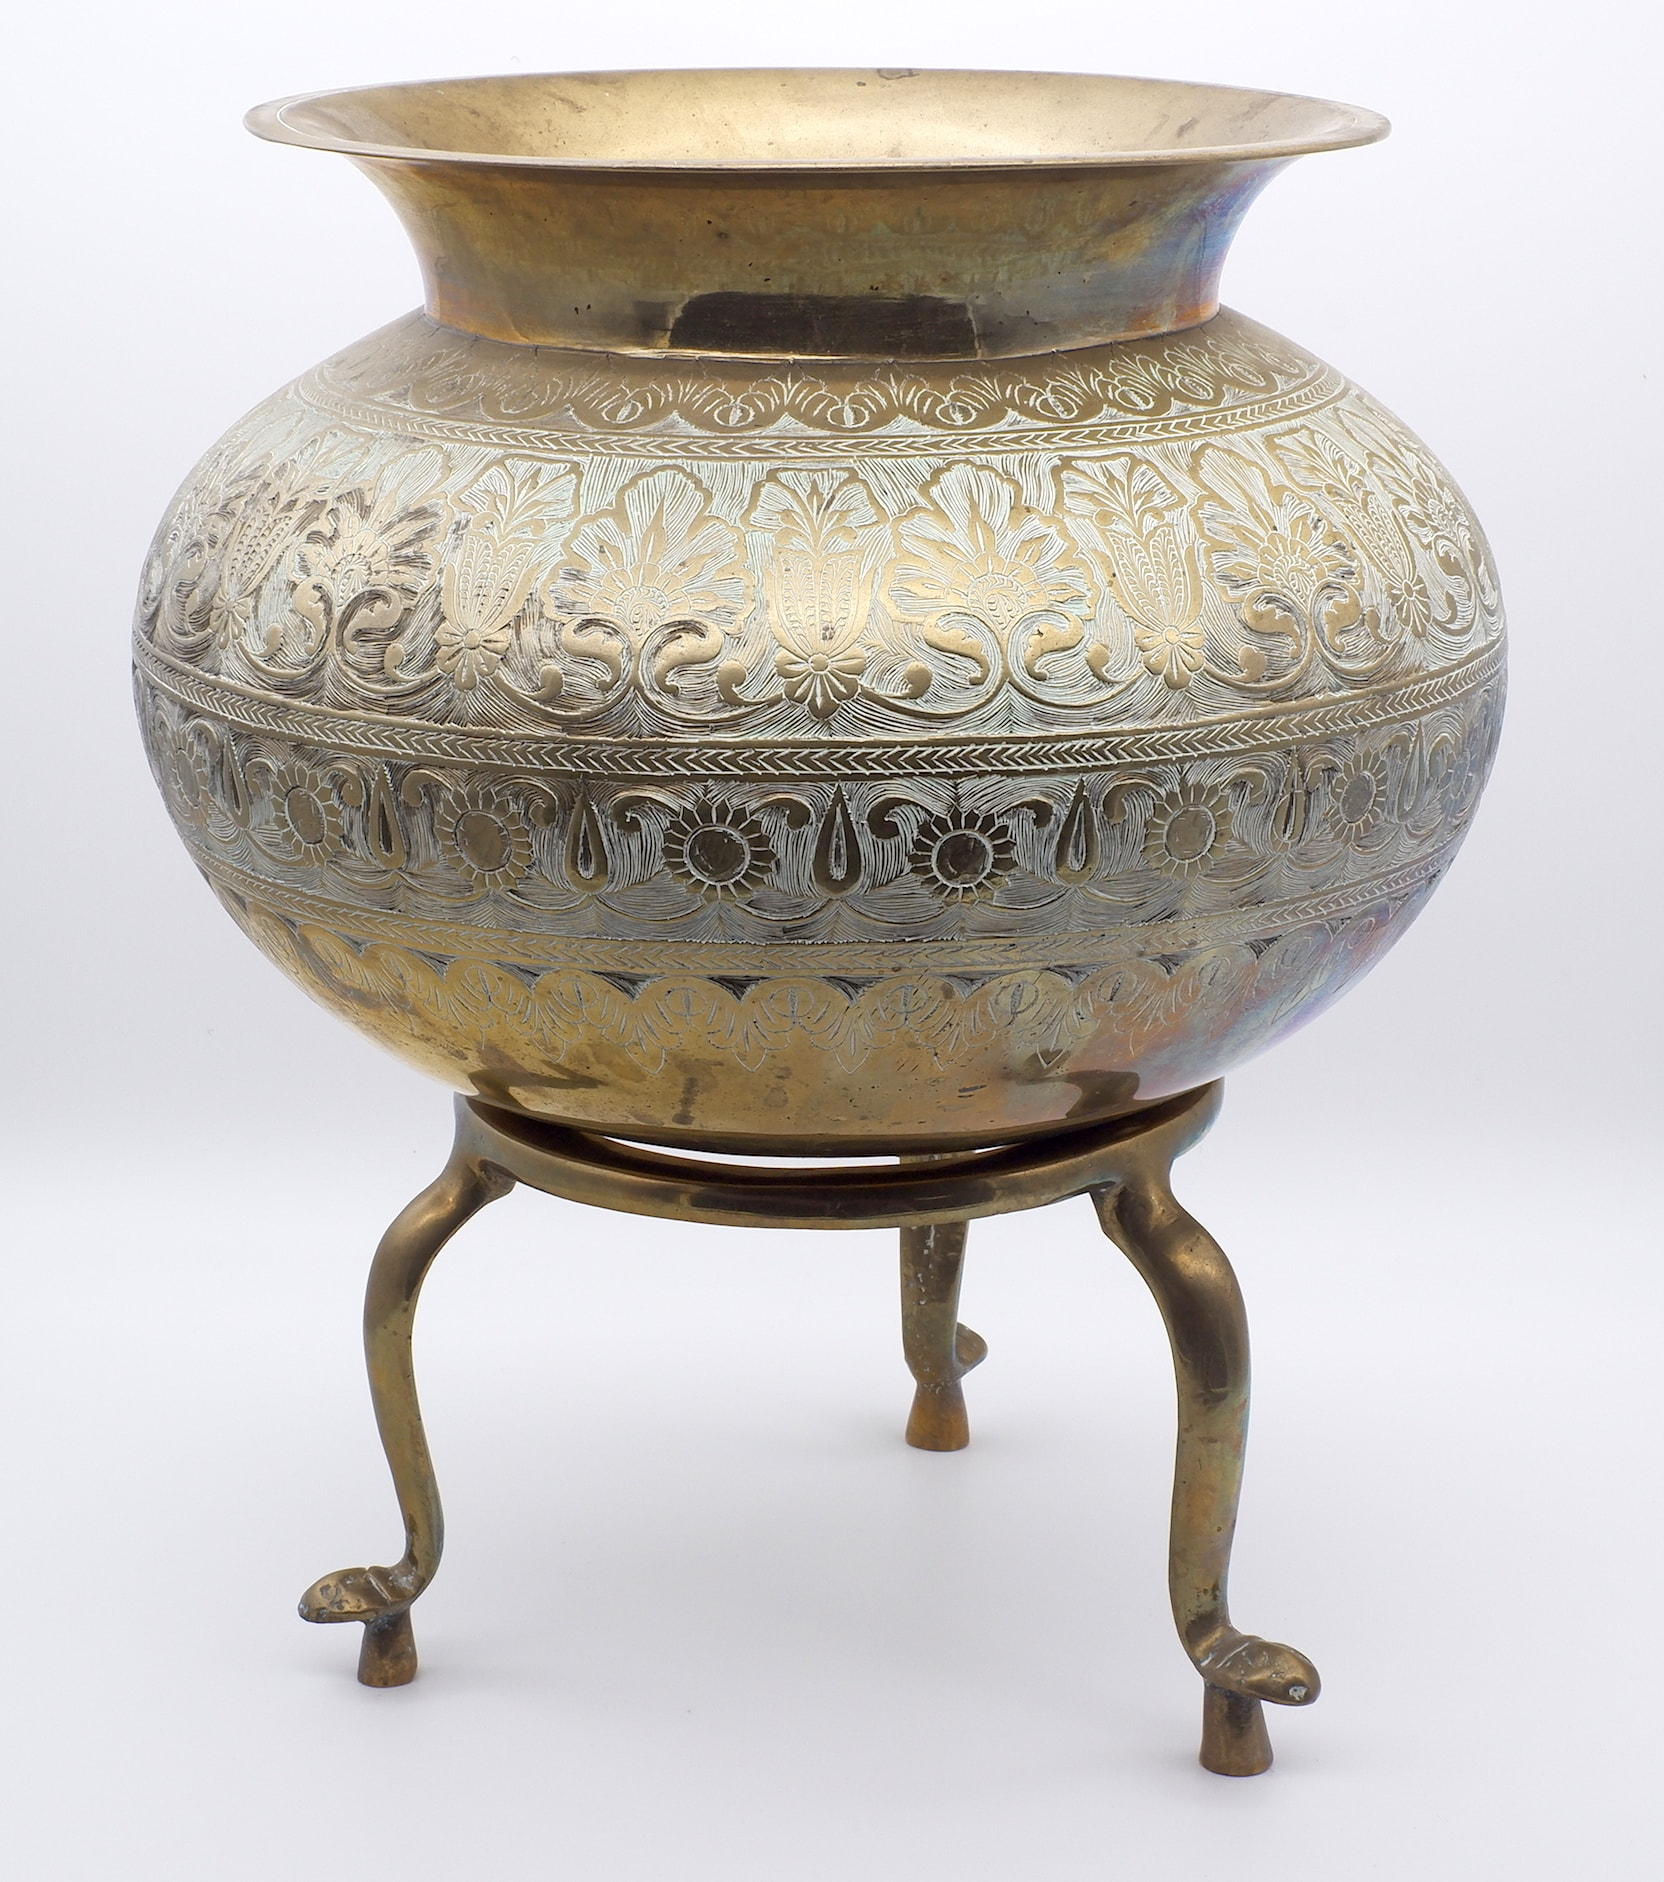 'Large Indian Cast and Engraved Brass Vessel on Stand, Deccan 19th or Early 20th Century'